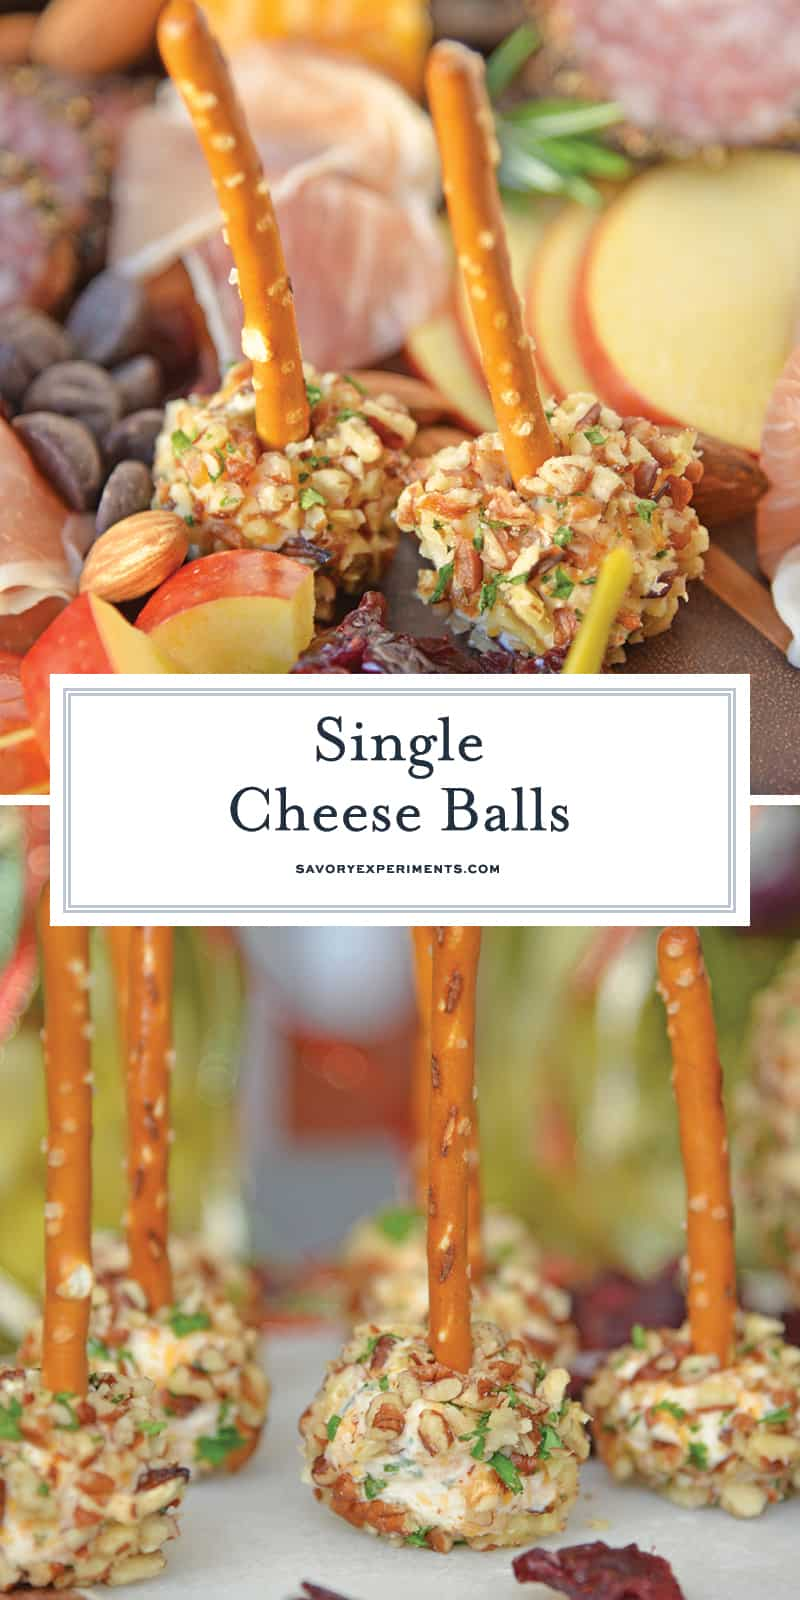 This cheese ball with cream cheese is a classic Party Cheese Ball recipe, made with simple ingredients. A must-make for any and all parties! #partycheeseballrecipe #creamcheeseball www.savoryexperiments.com